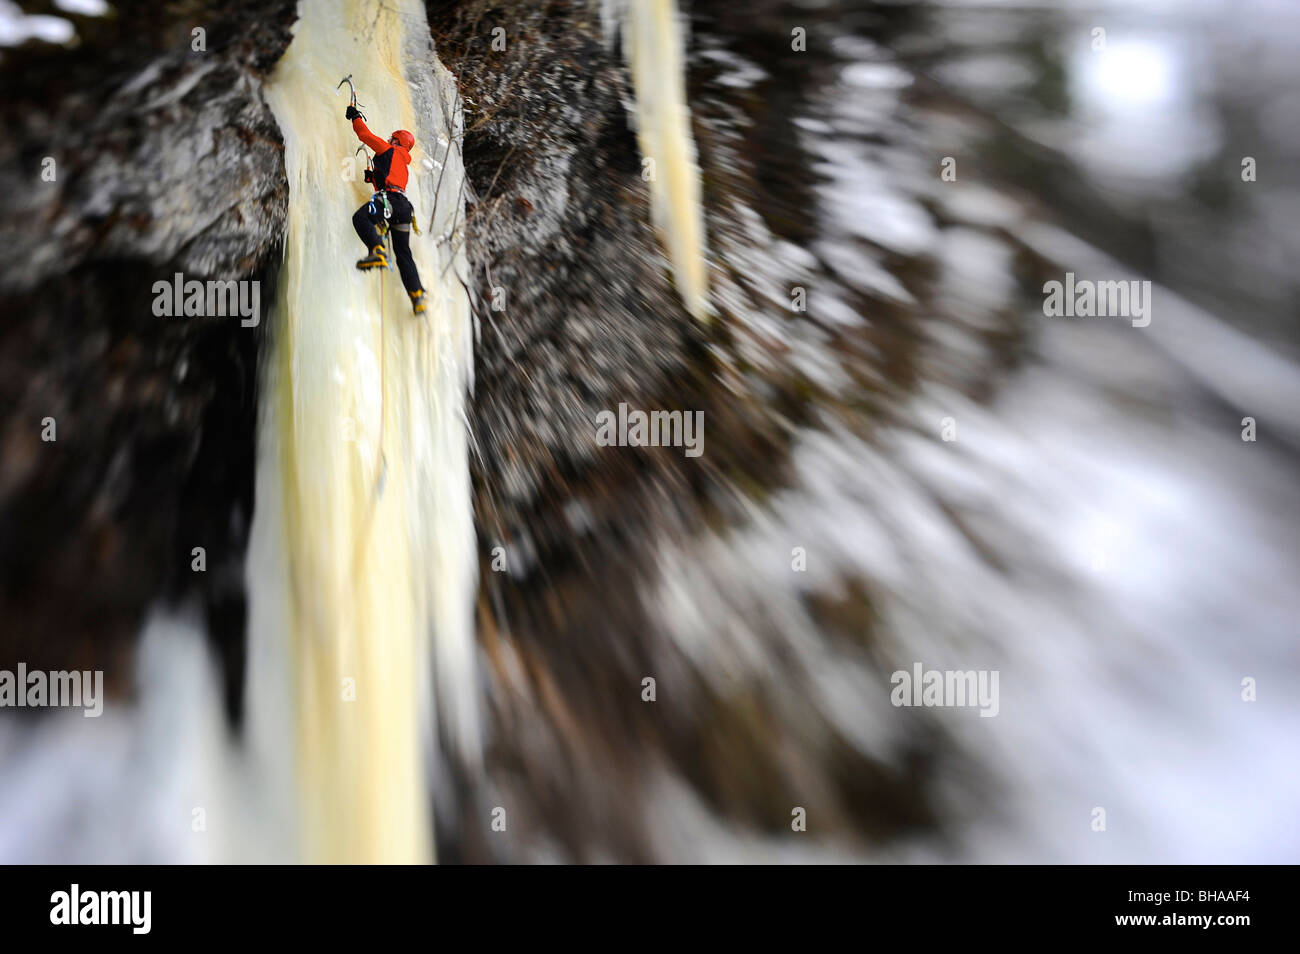 Woman ice climber ascends a large icefall in Southcentral Alaska - Stock Image